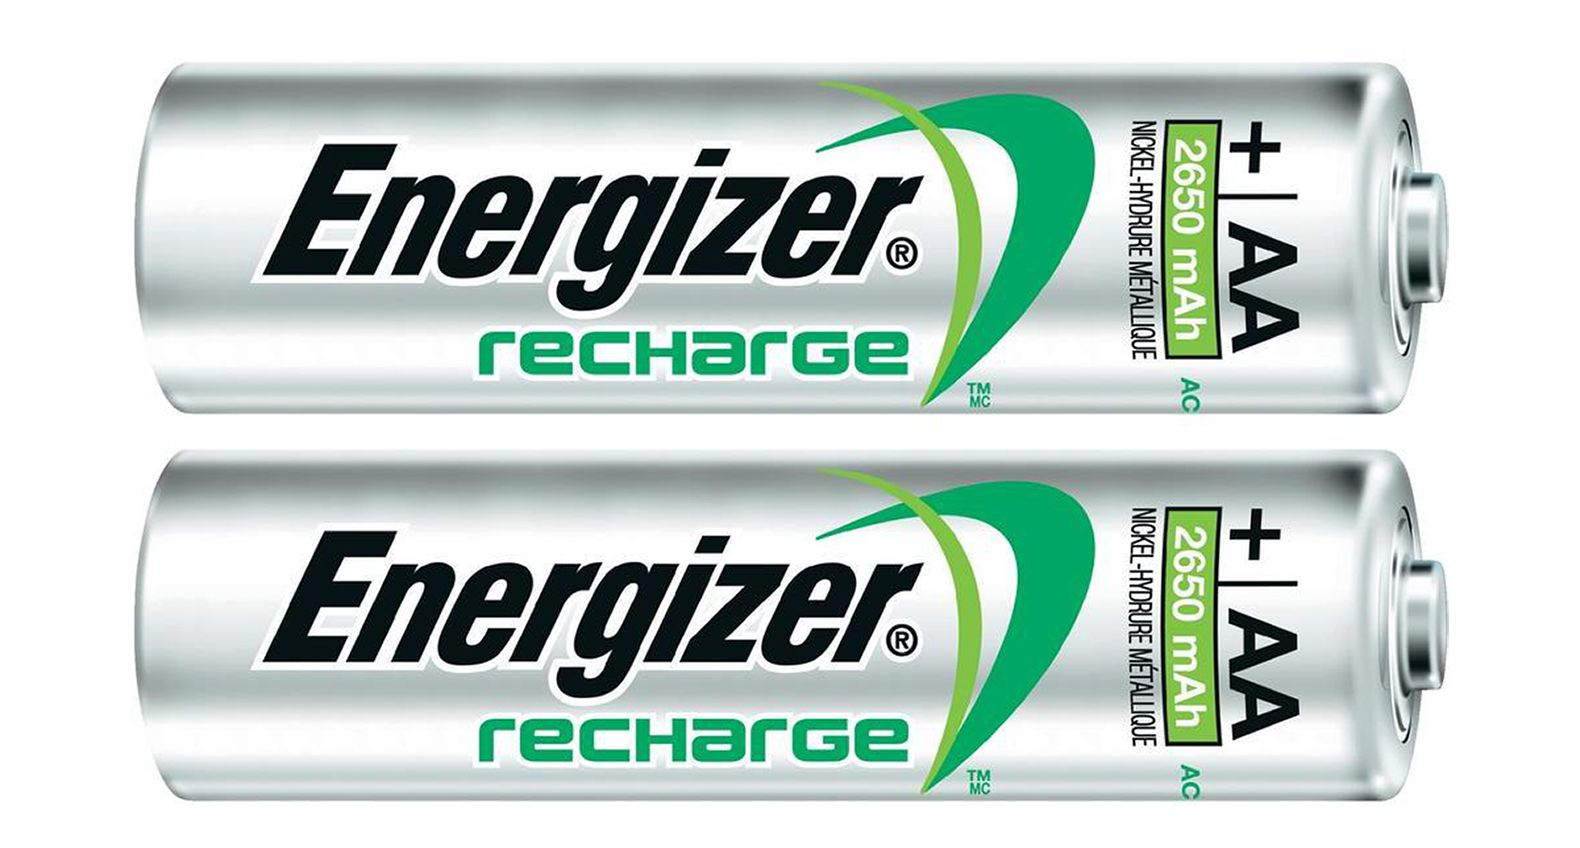 Energizer Launches World S First Recycled Rechargeable Batteries Rechargeable Batteries Energizer Recharge